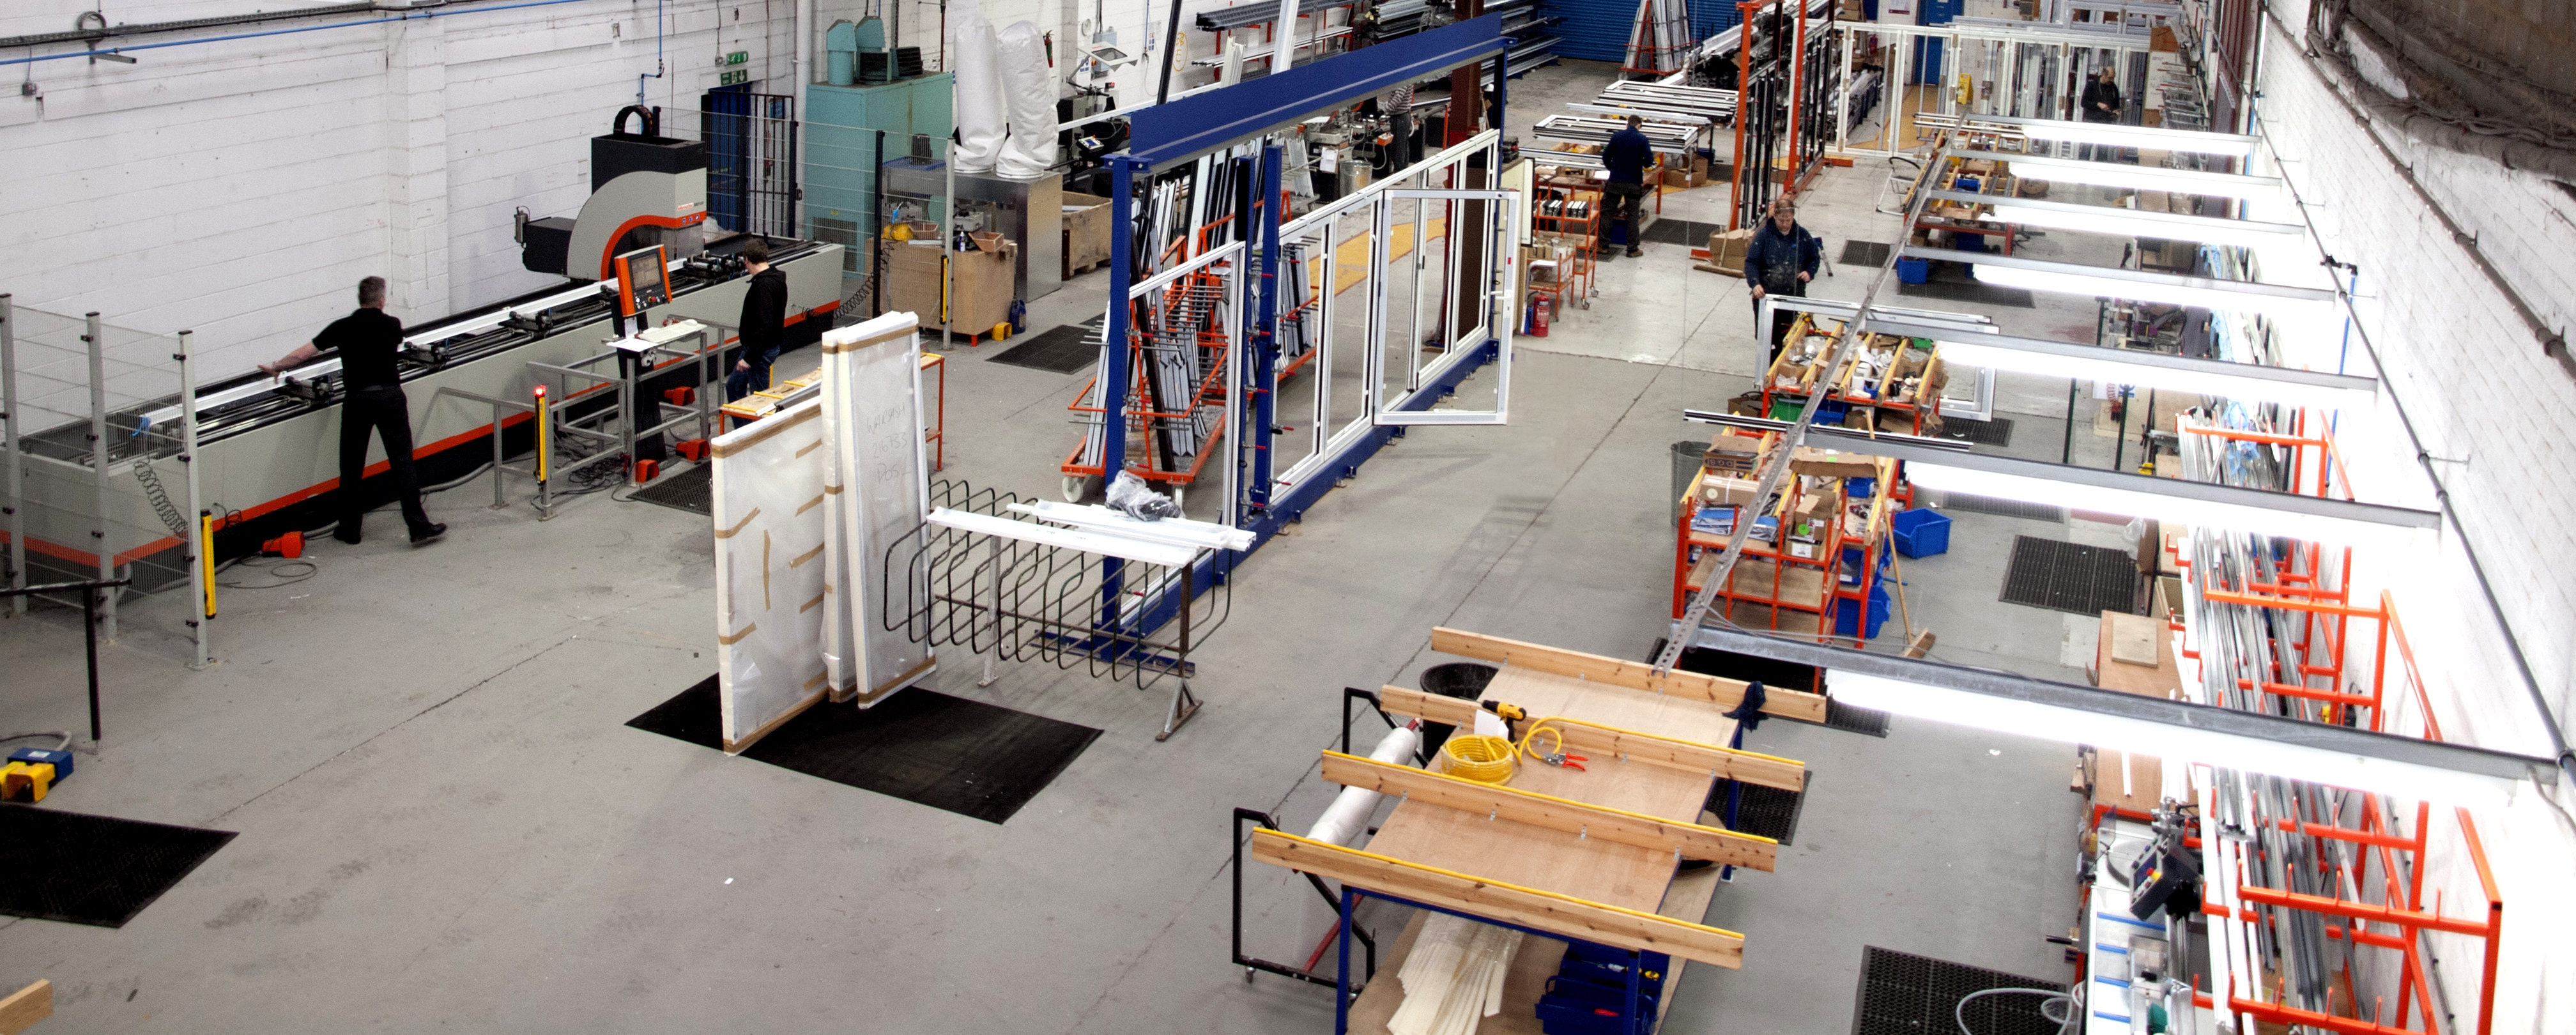 BRAND NEW FACILITIES FOR A TWO-FOLD INCREASE IN OUTPUT